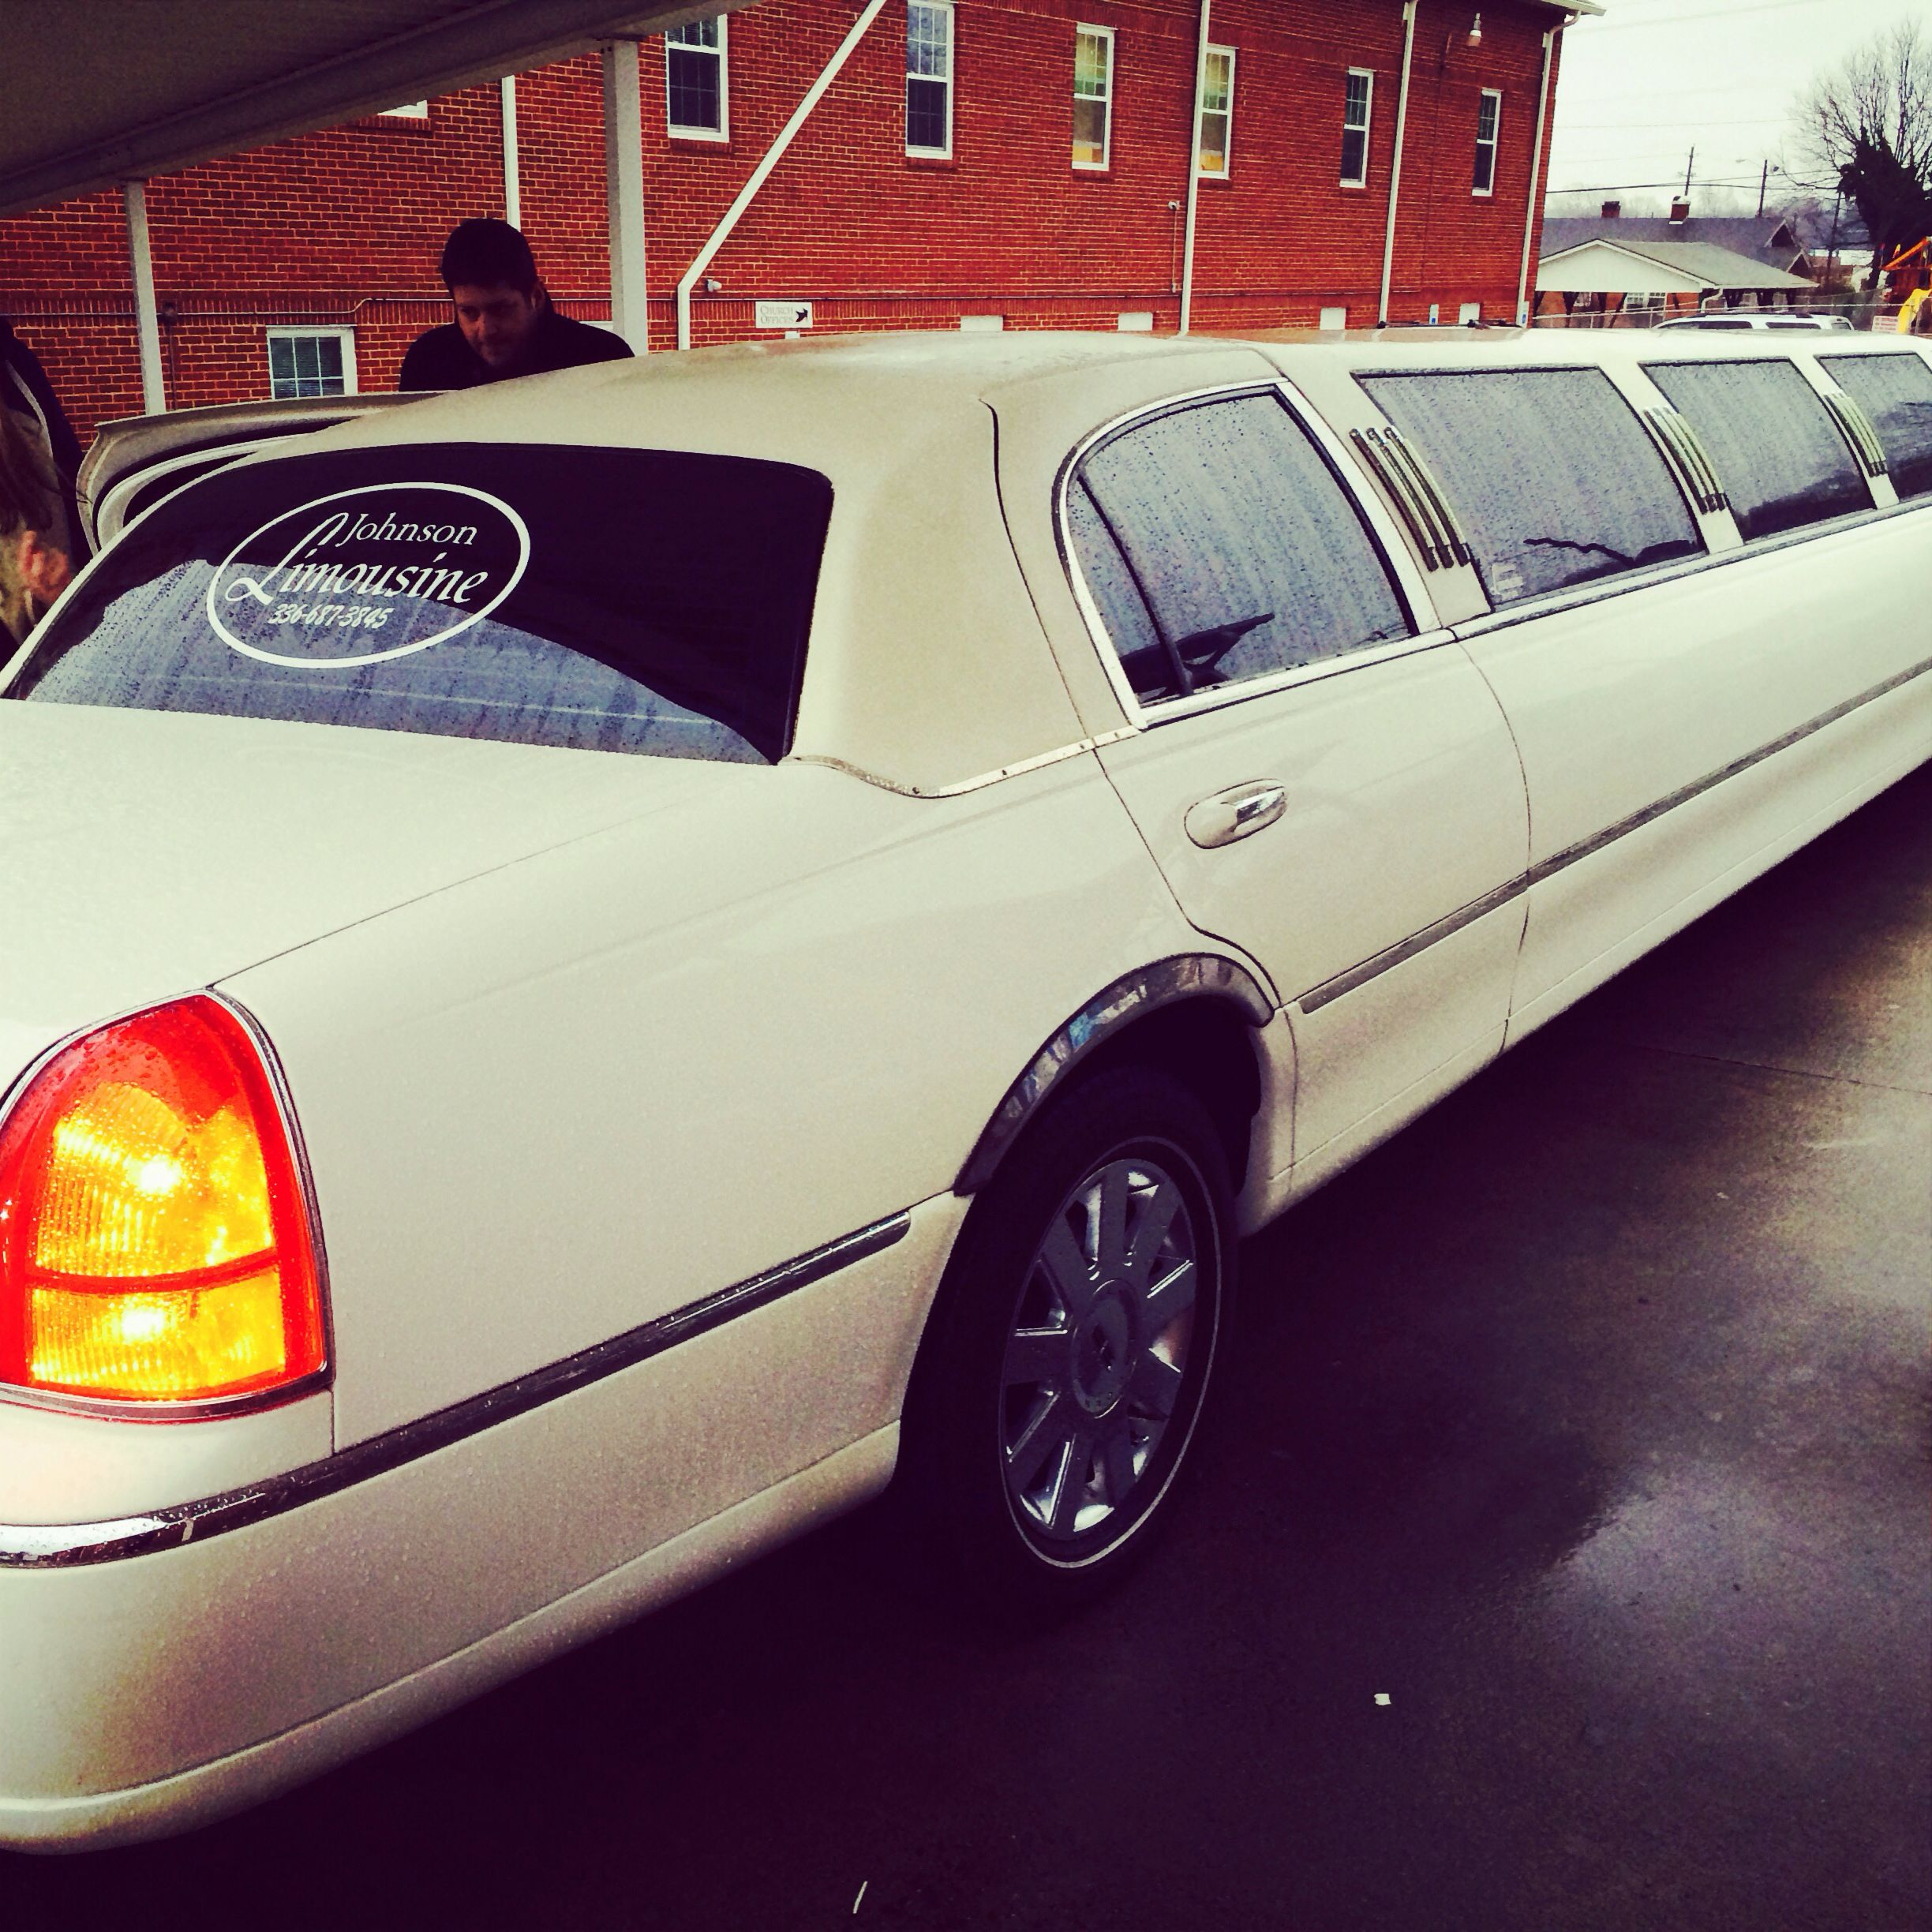 18th Birthday Party Ideas Limo Hire Party Bus: Limo Scavenger Hunt Birthday Party